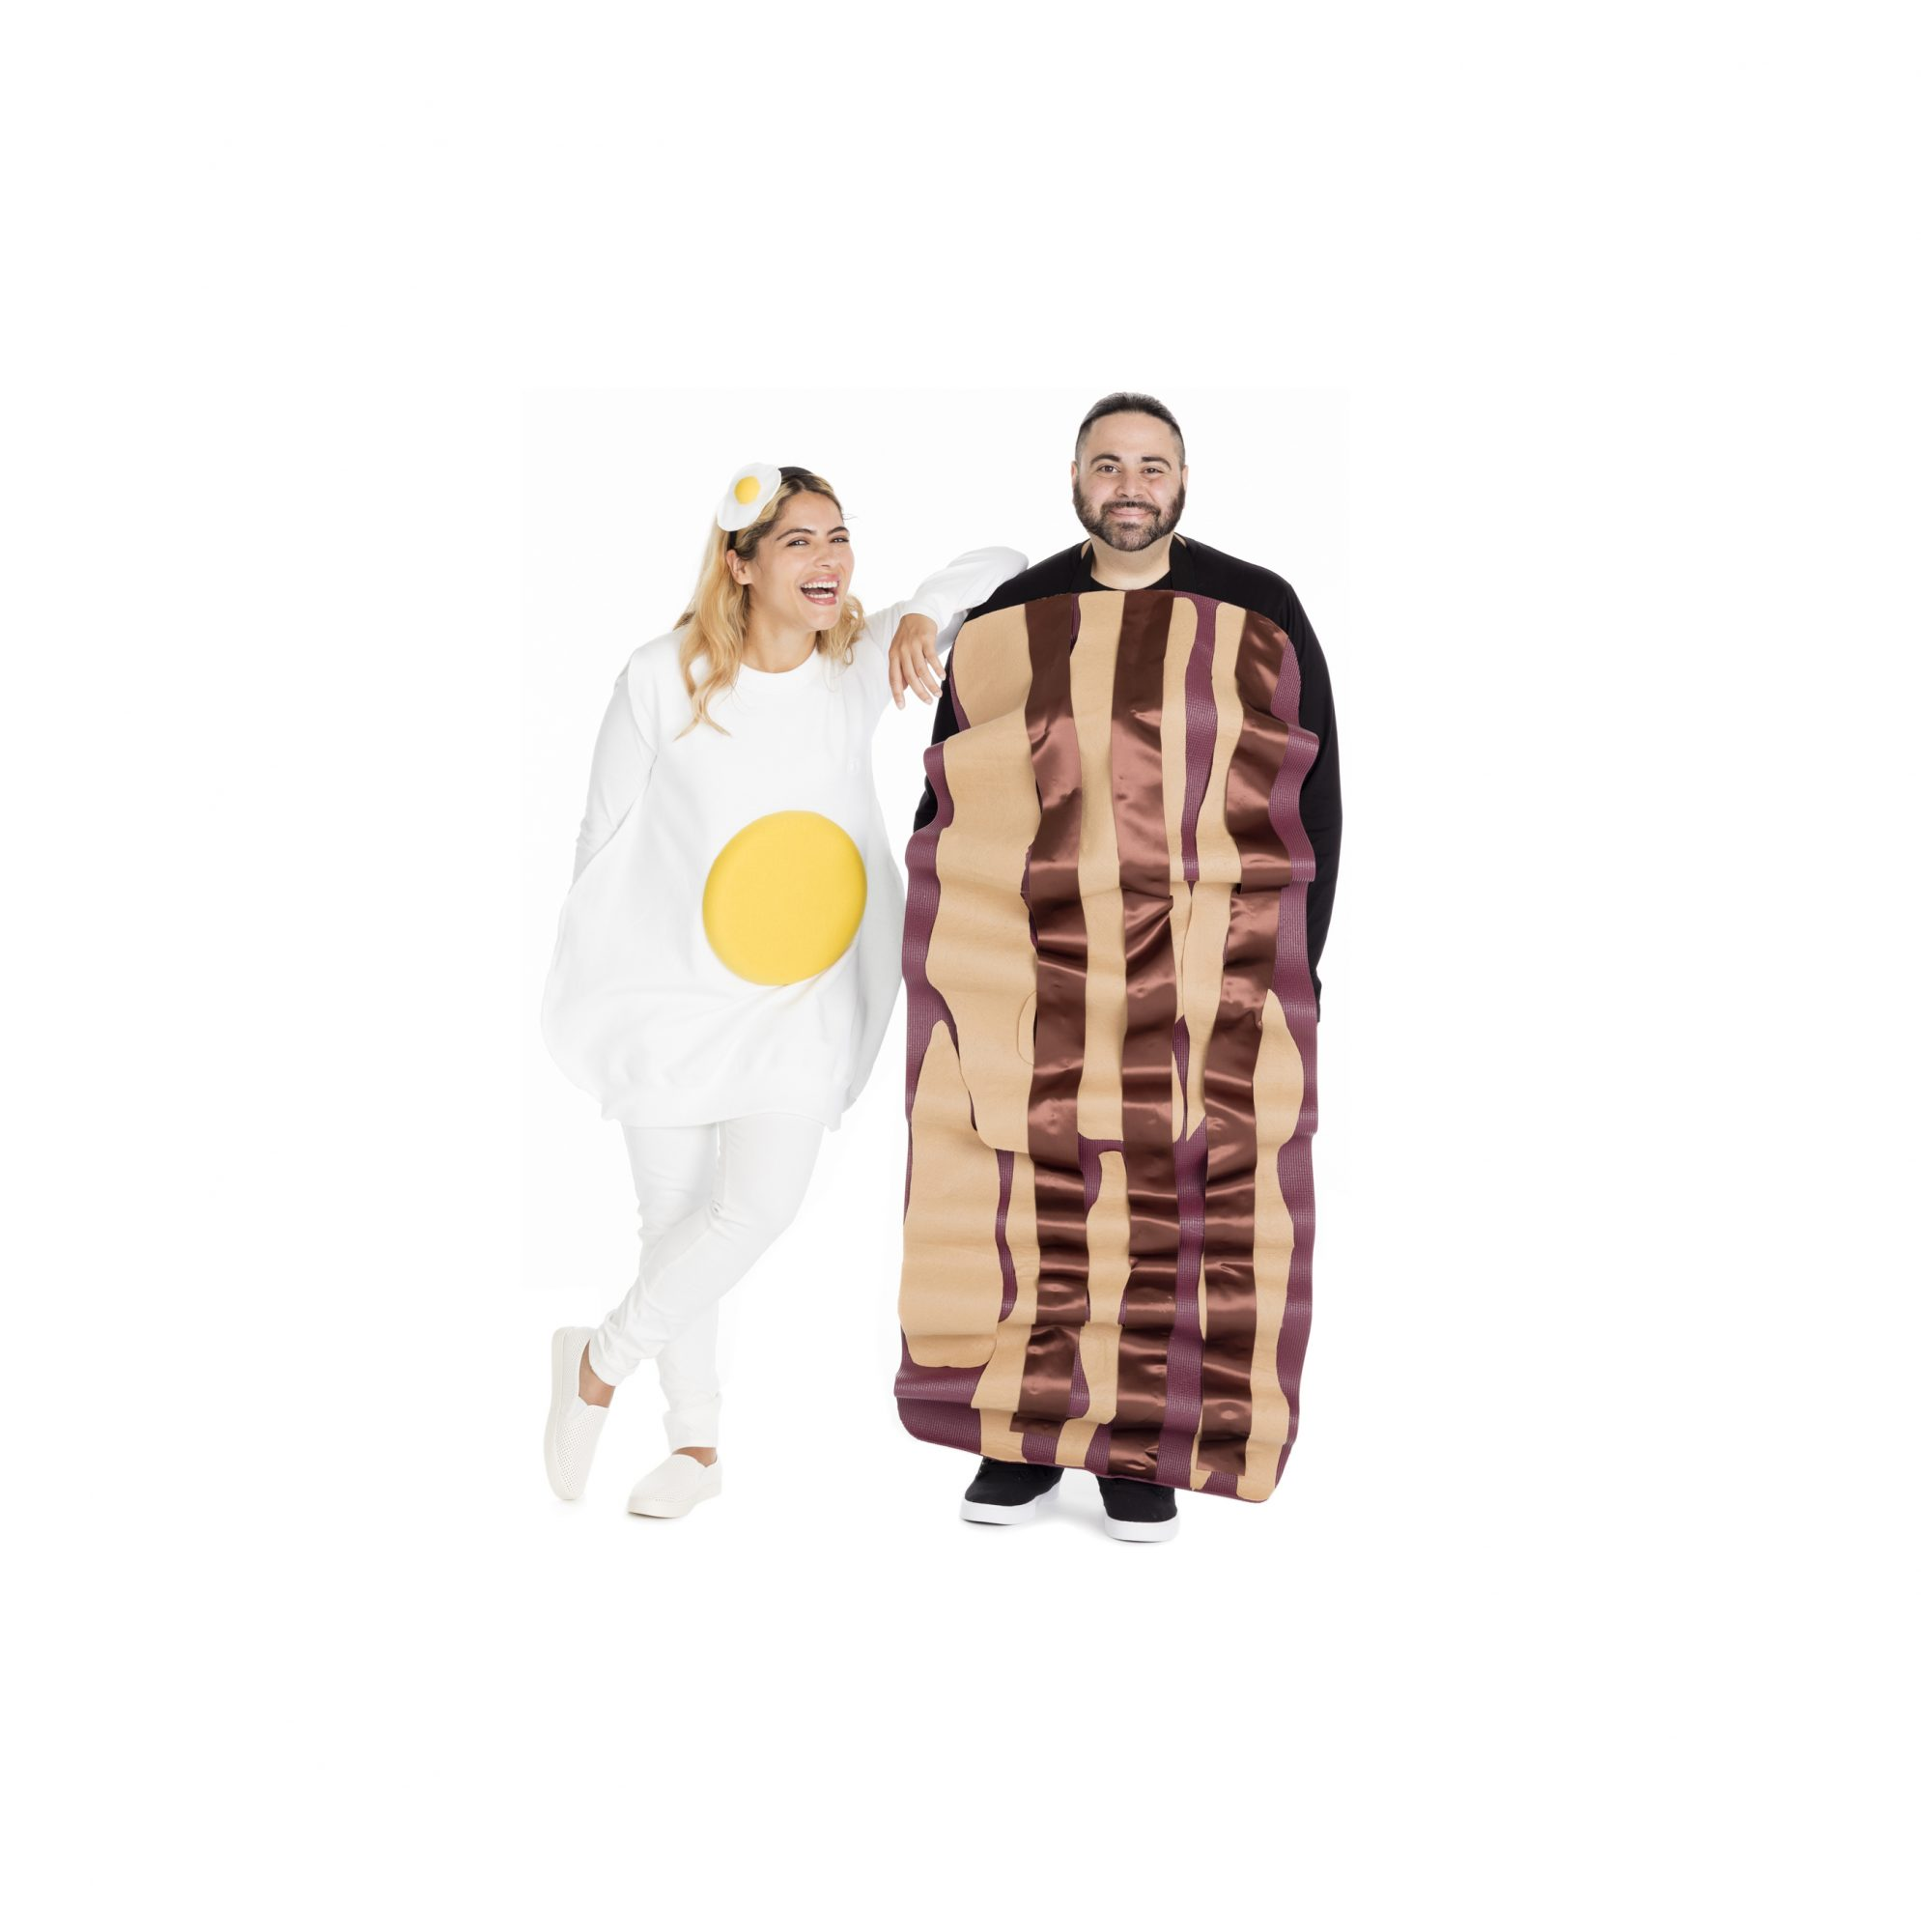 Group Bacon and Eggs Costume  sc 1 st  Real Simple & Group Halloween Costumes | Real Simple